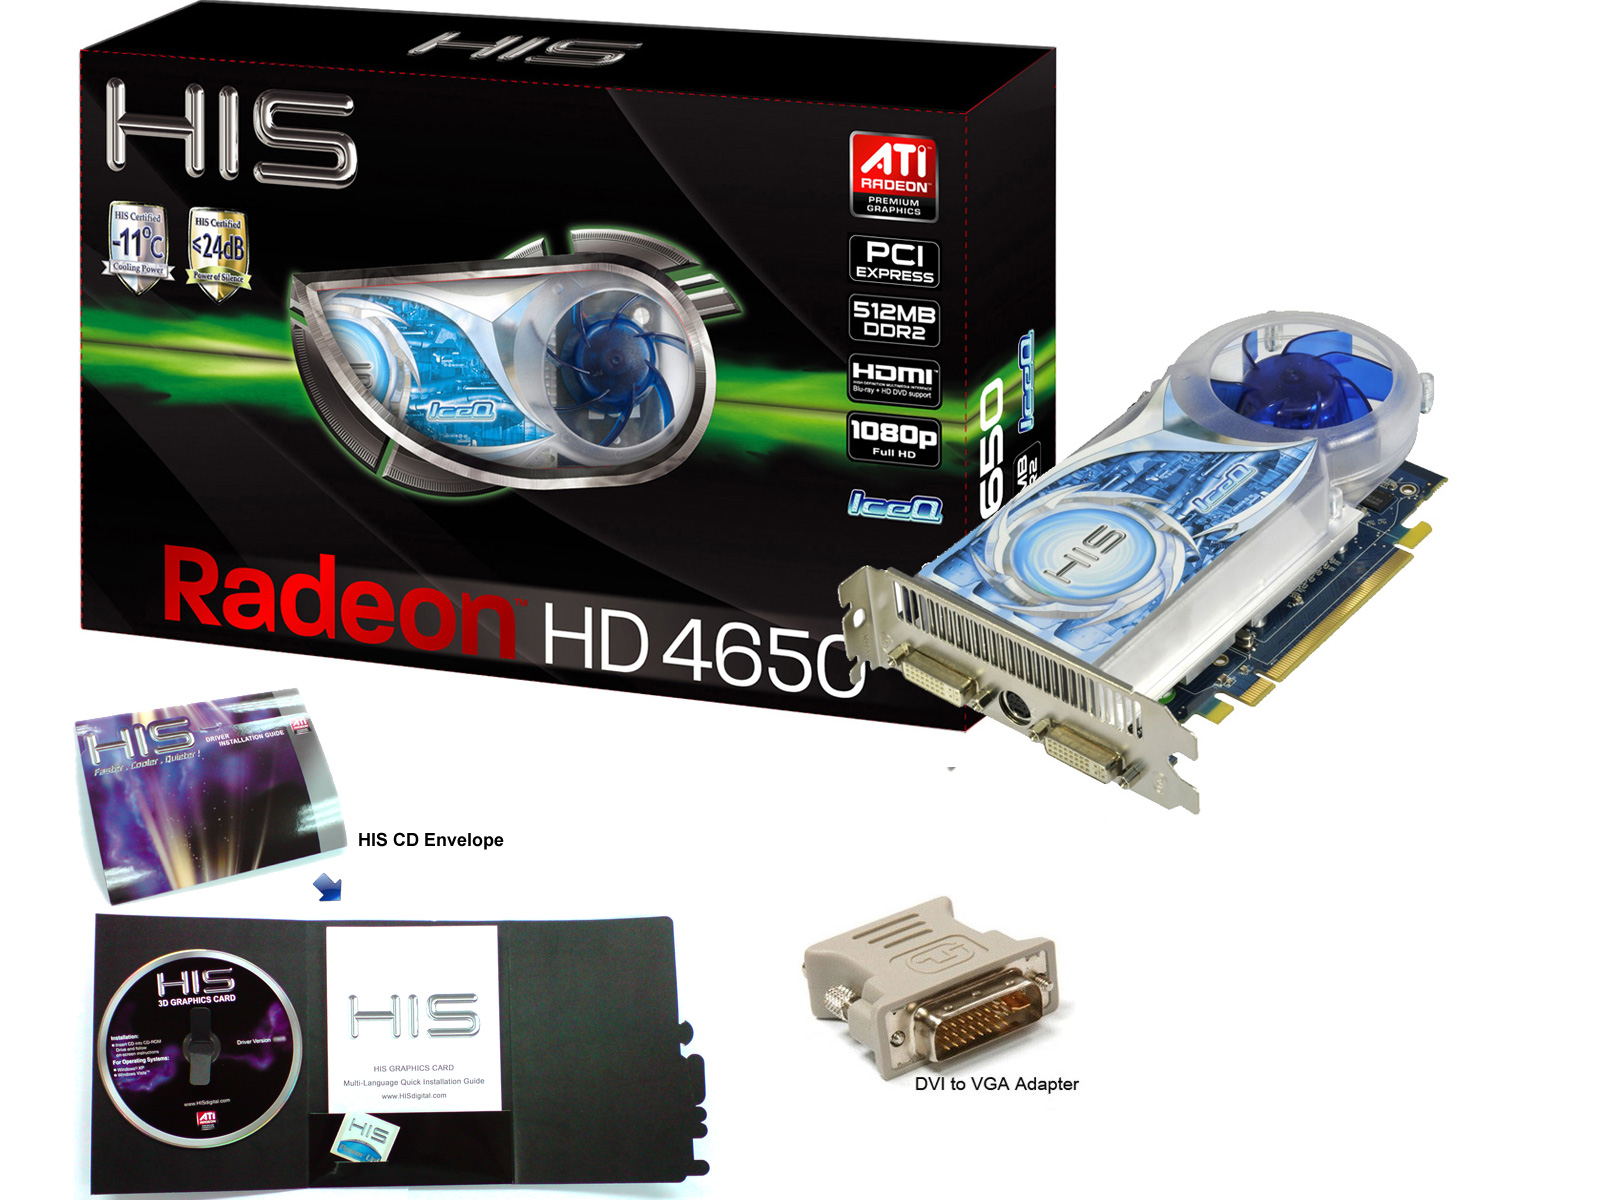 Radeon Mobility HD 3470 Driver for Windows XP